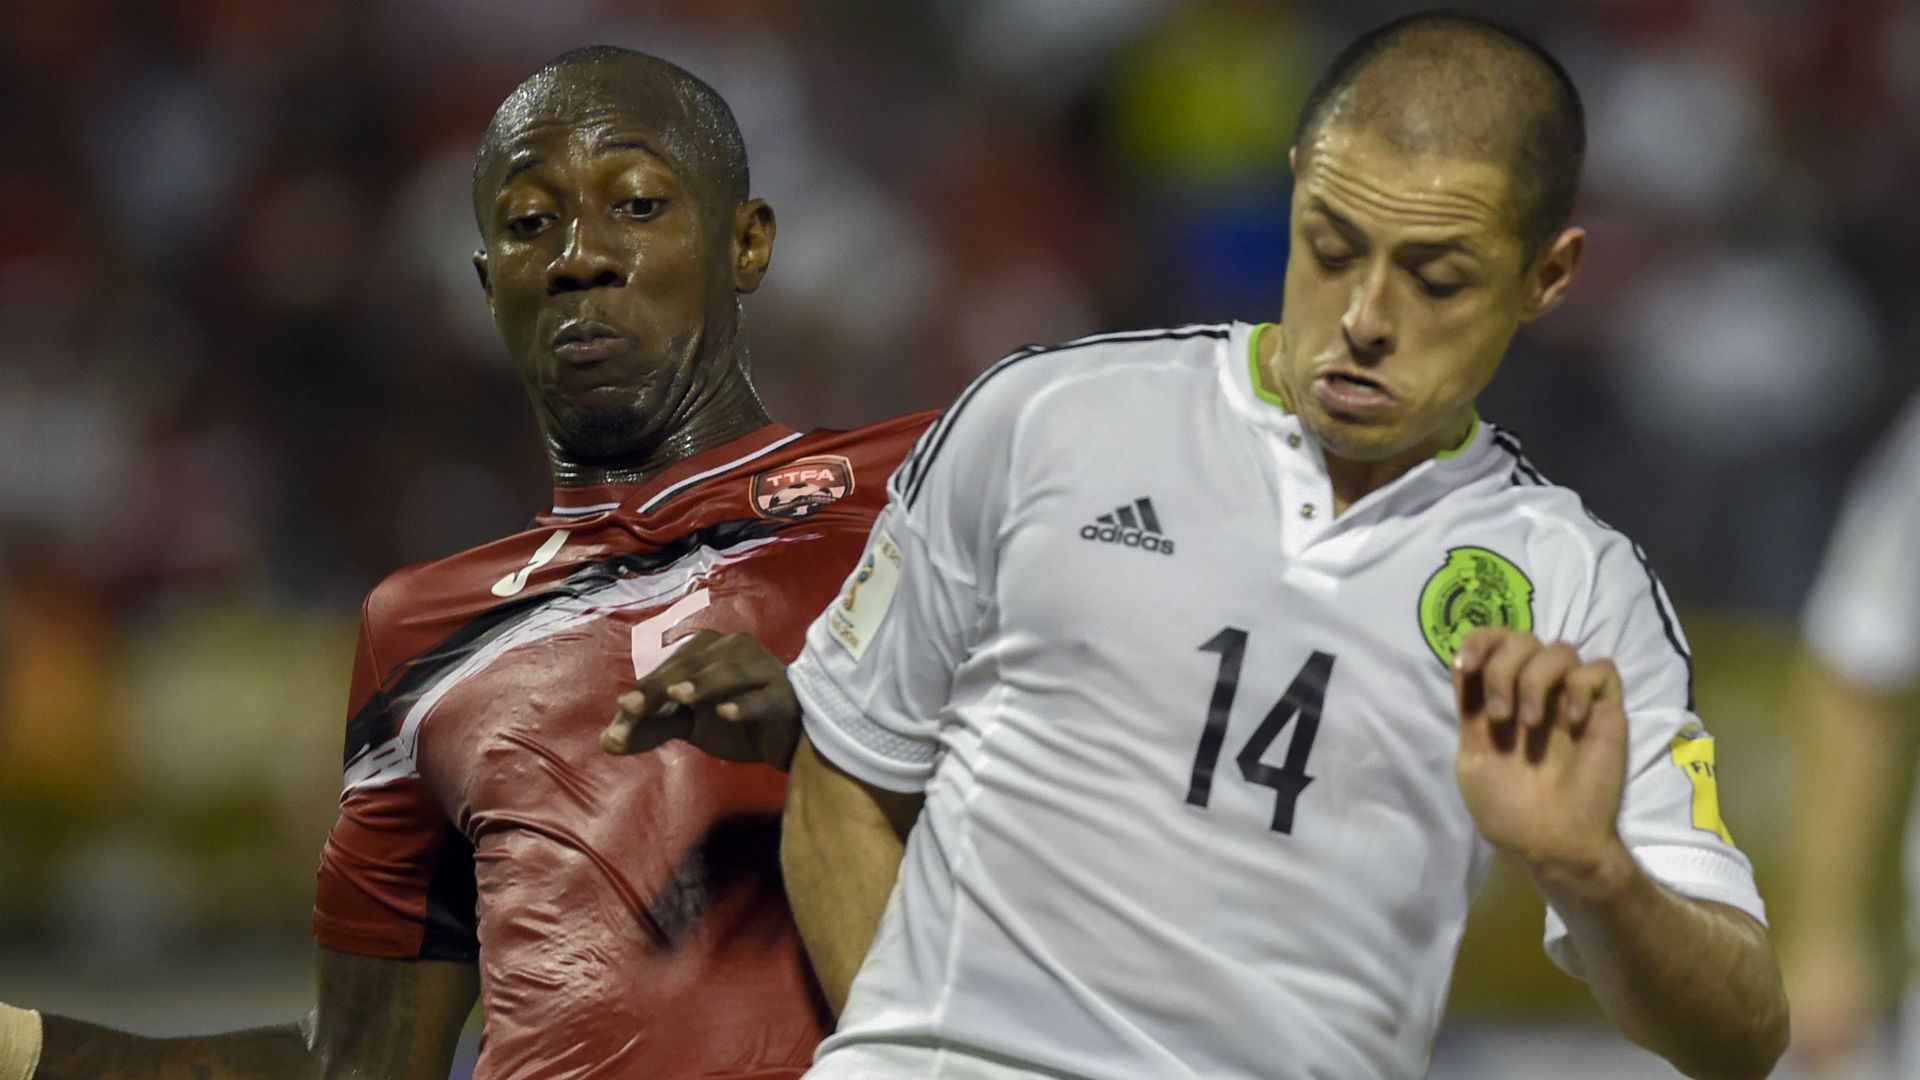 Javier Hernandez Daneil Cyrus Mexico vs. Trinidad and Tobago